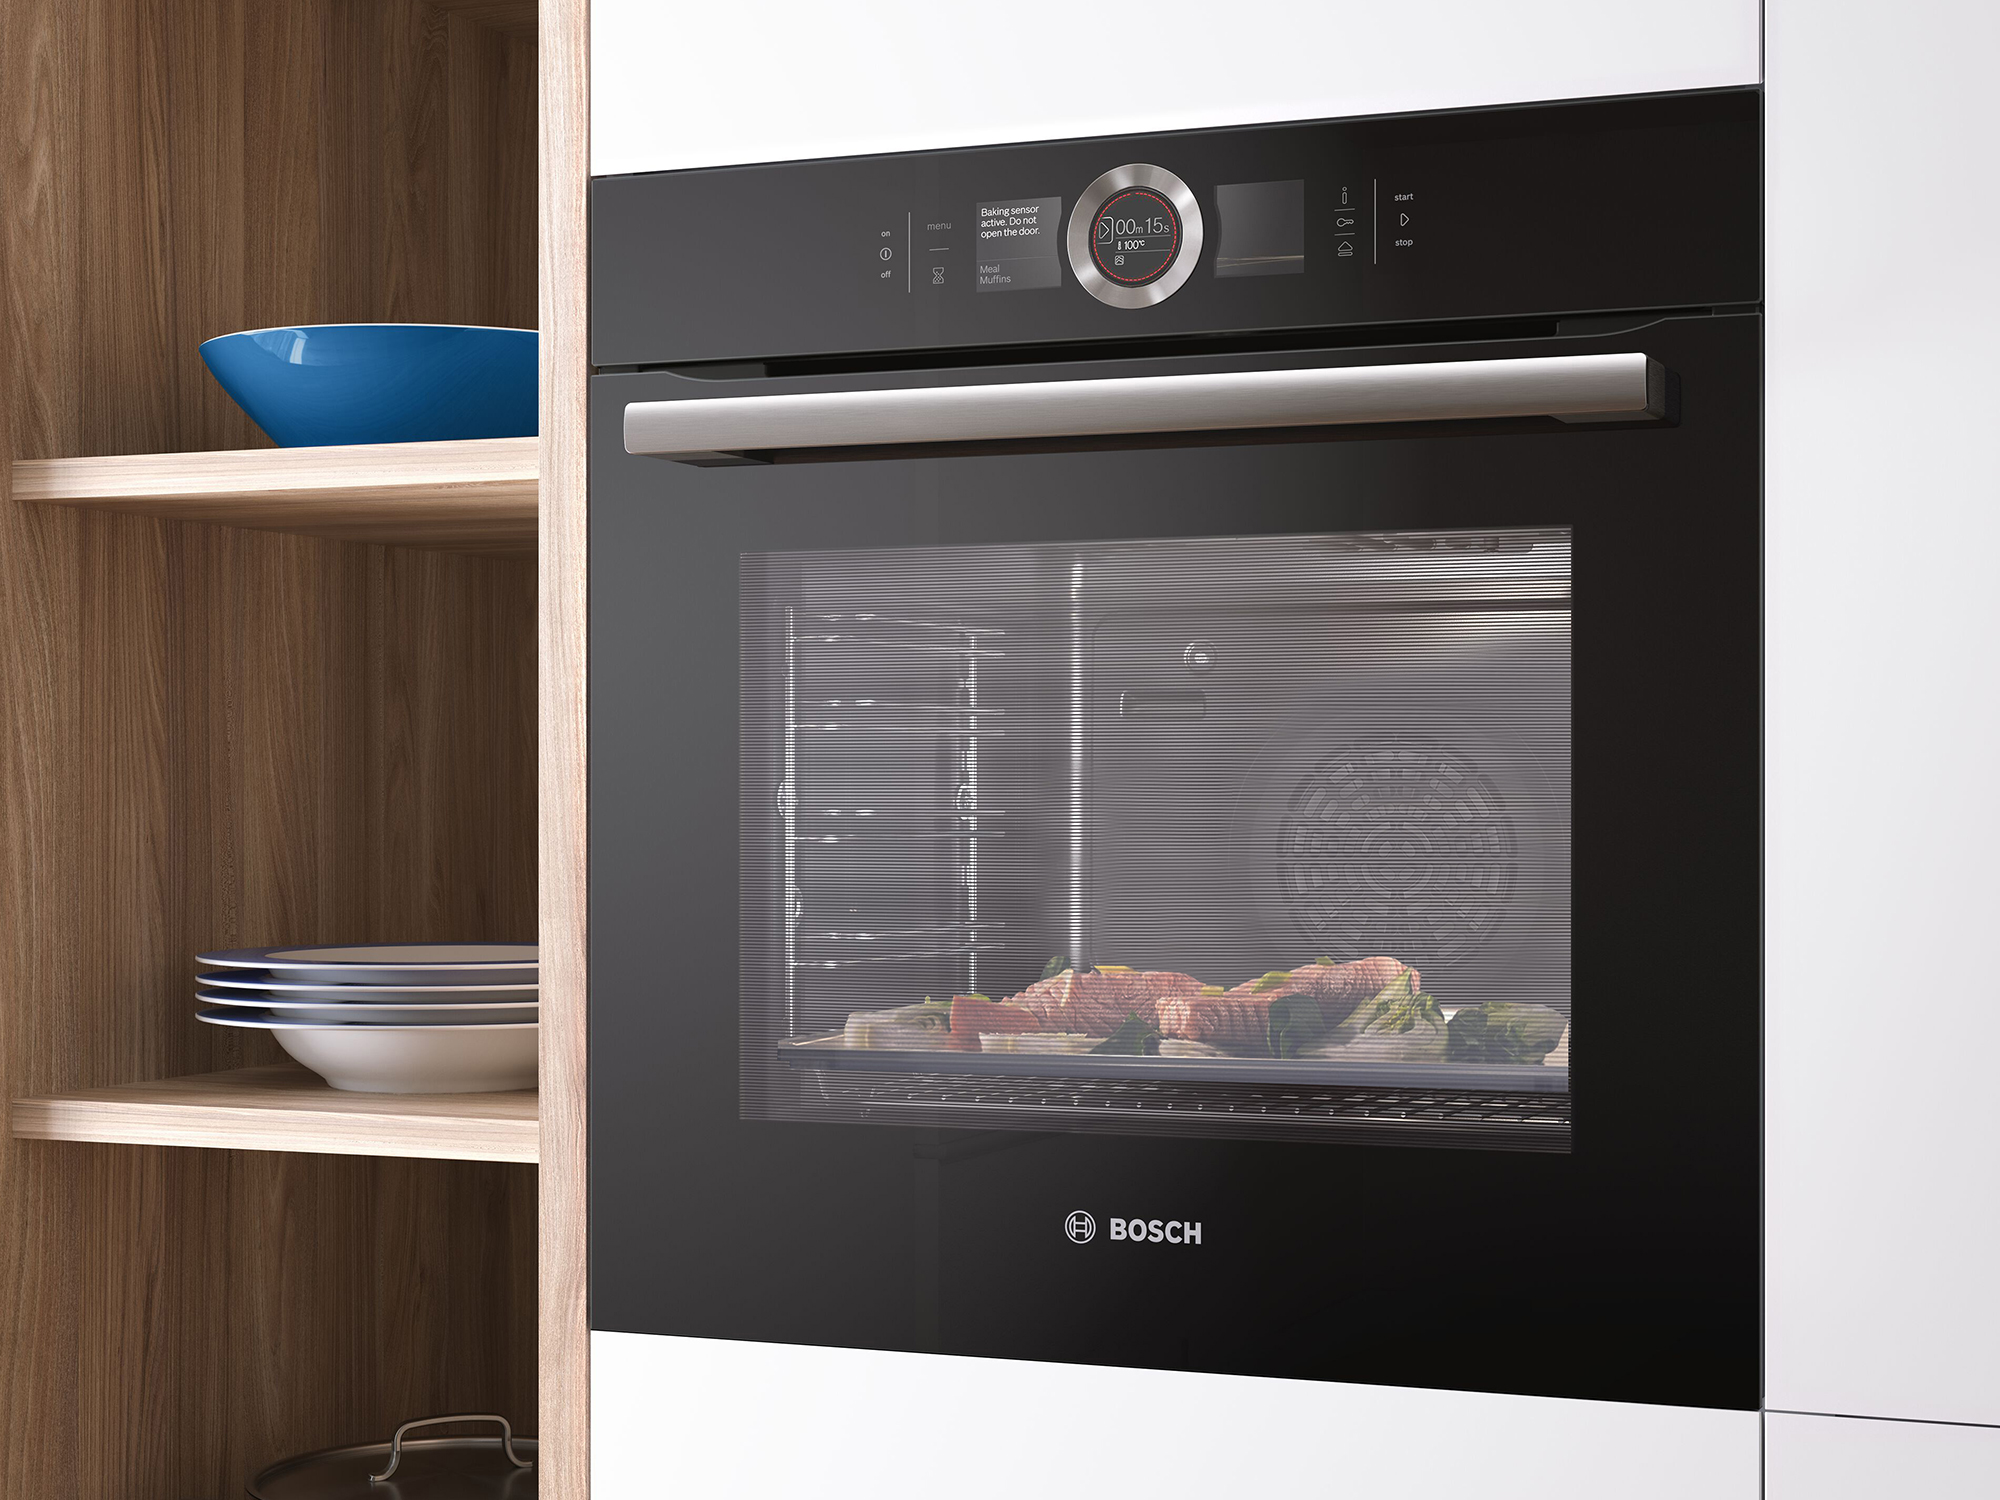 Bosch oven appliances